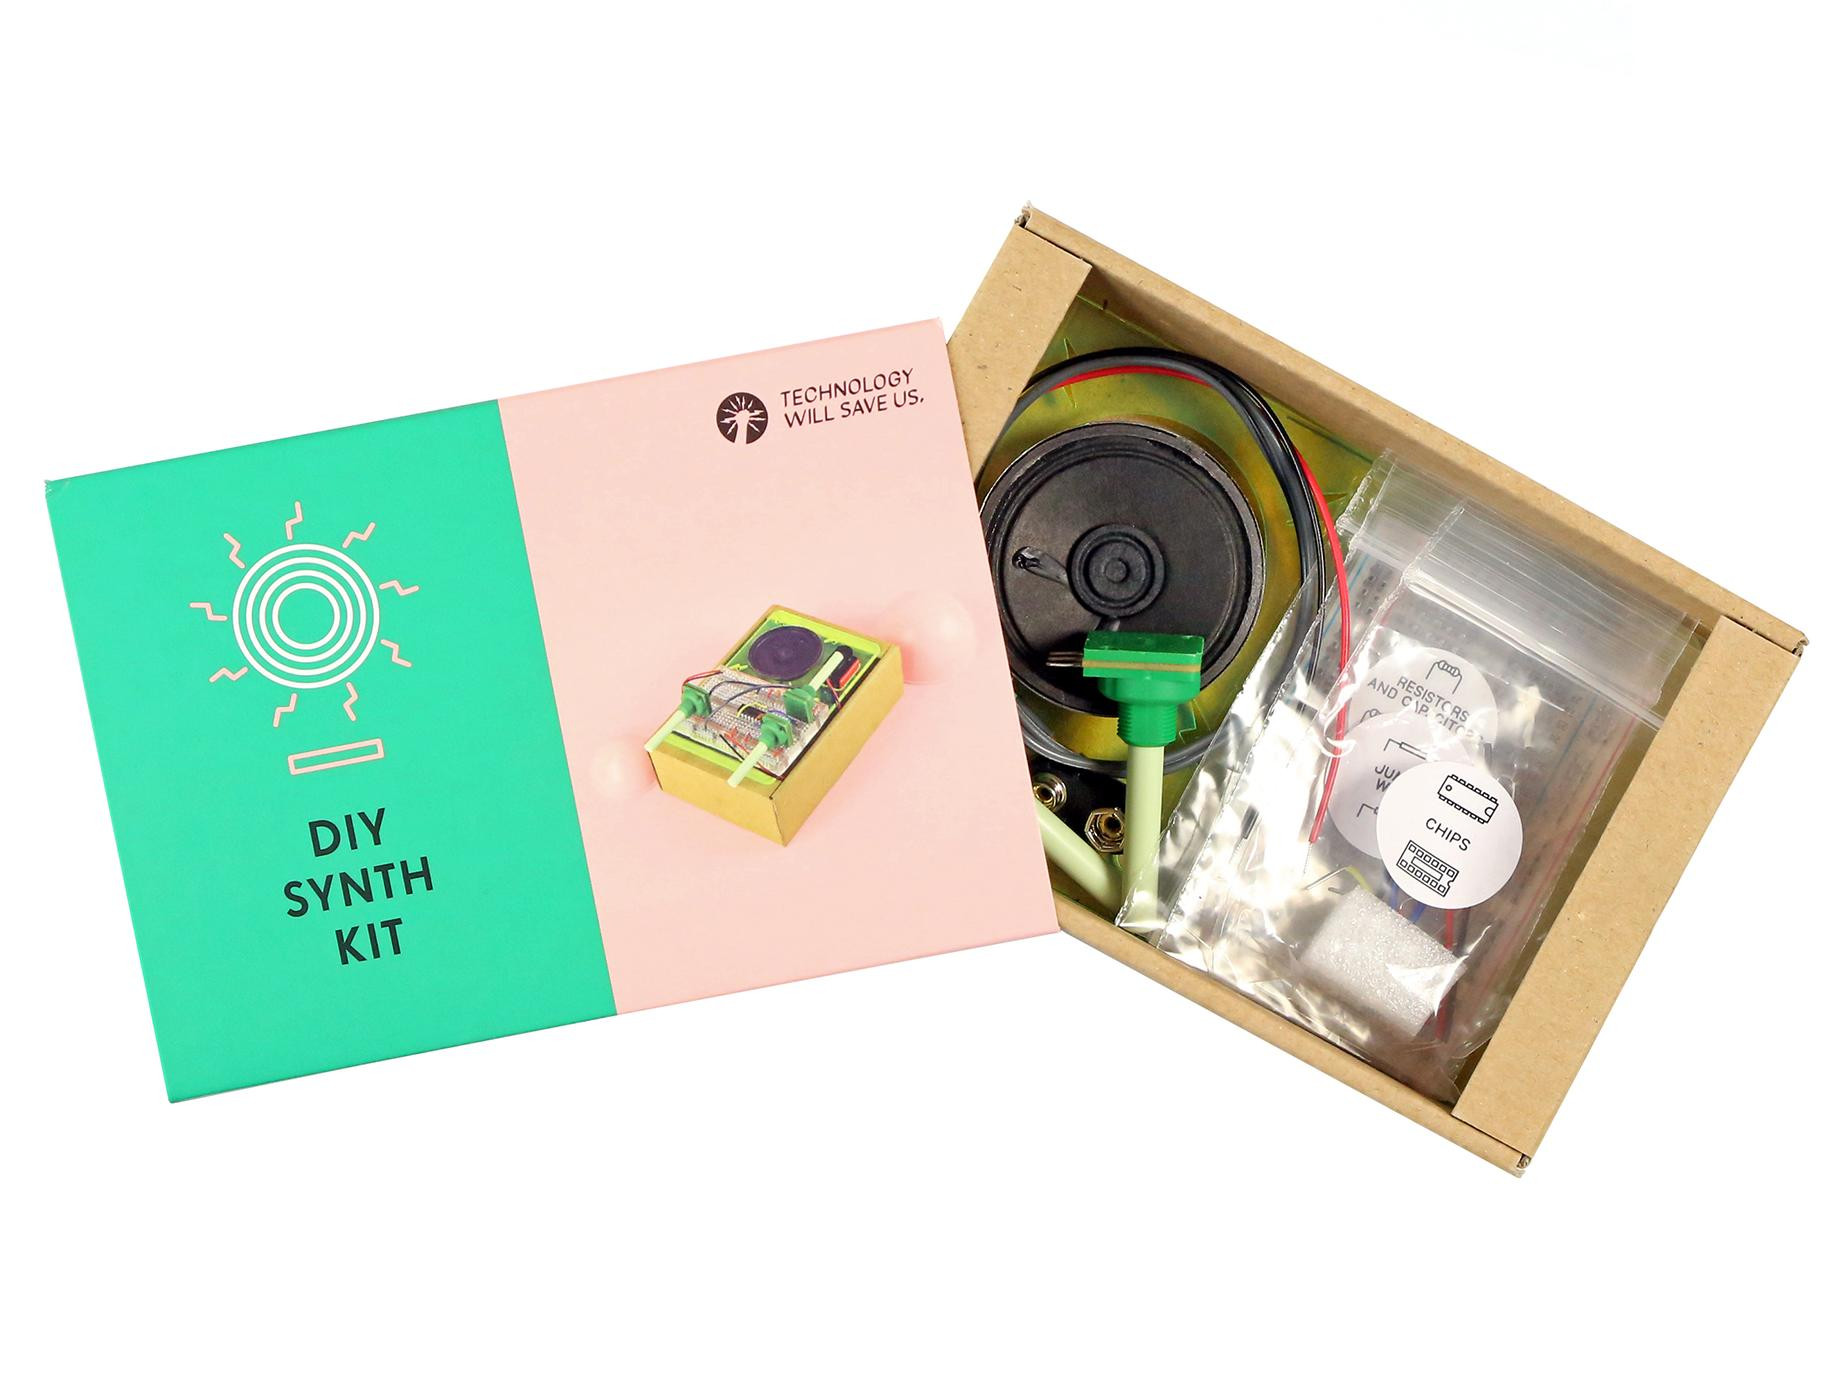 Best ideas about DIY Synthesizer Kits . Save or Pin DIY Synth Kit Technology Will Save Us Now.